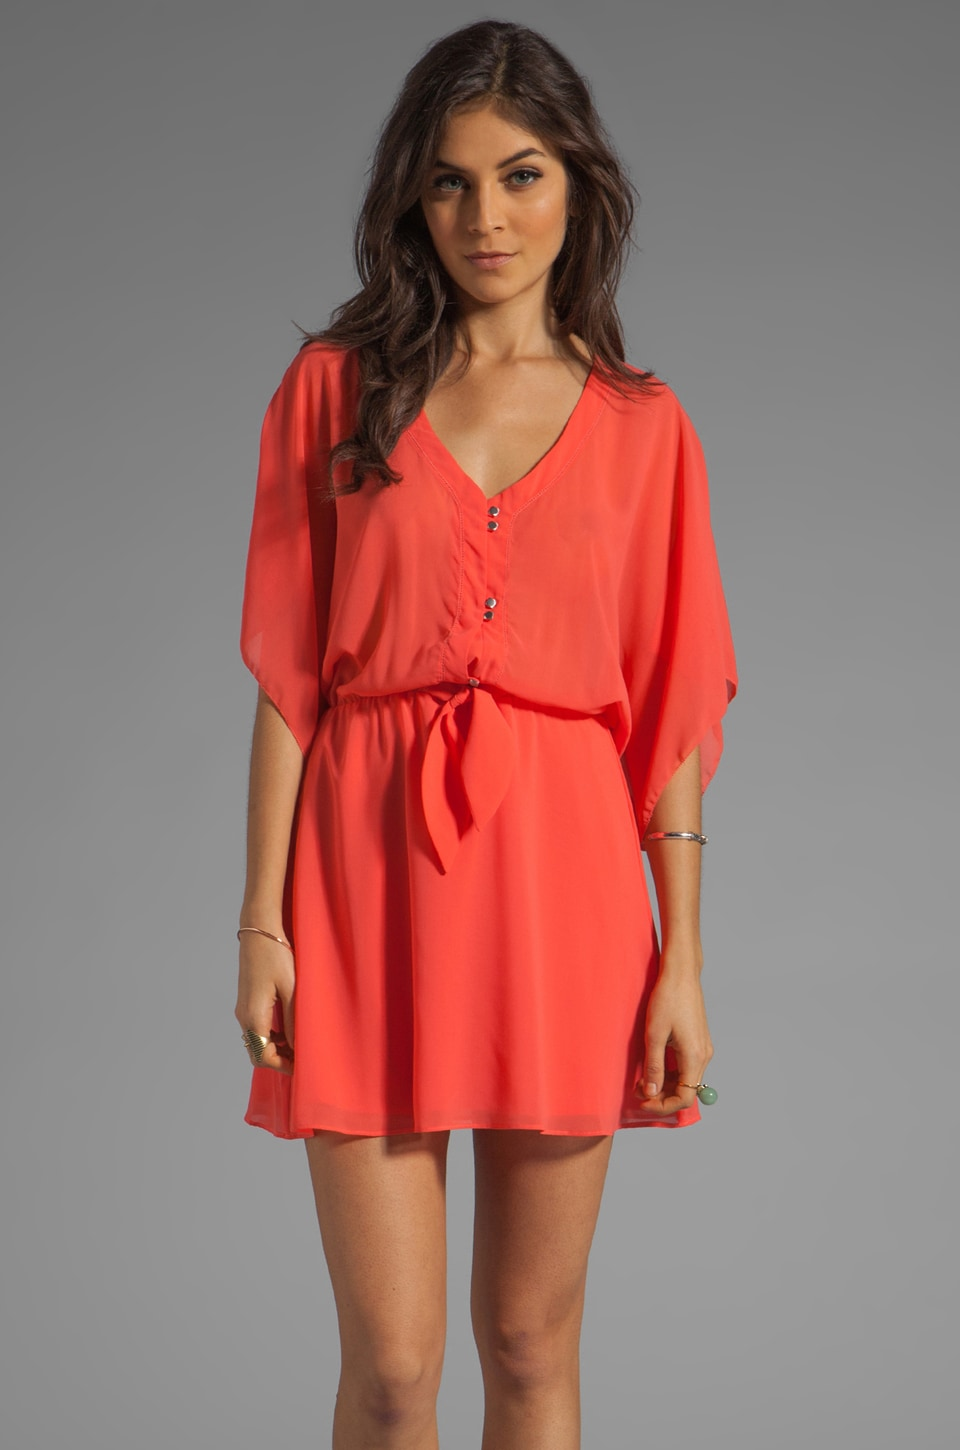 Dolce Vita Maile Dress in Coral